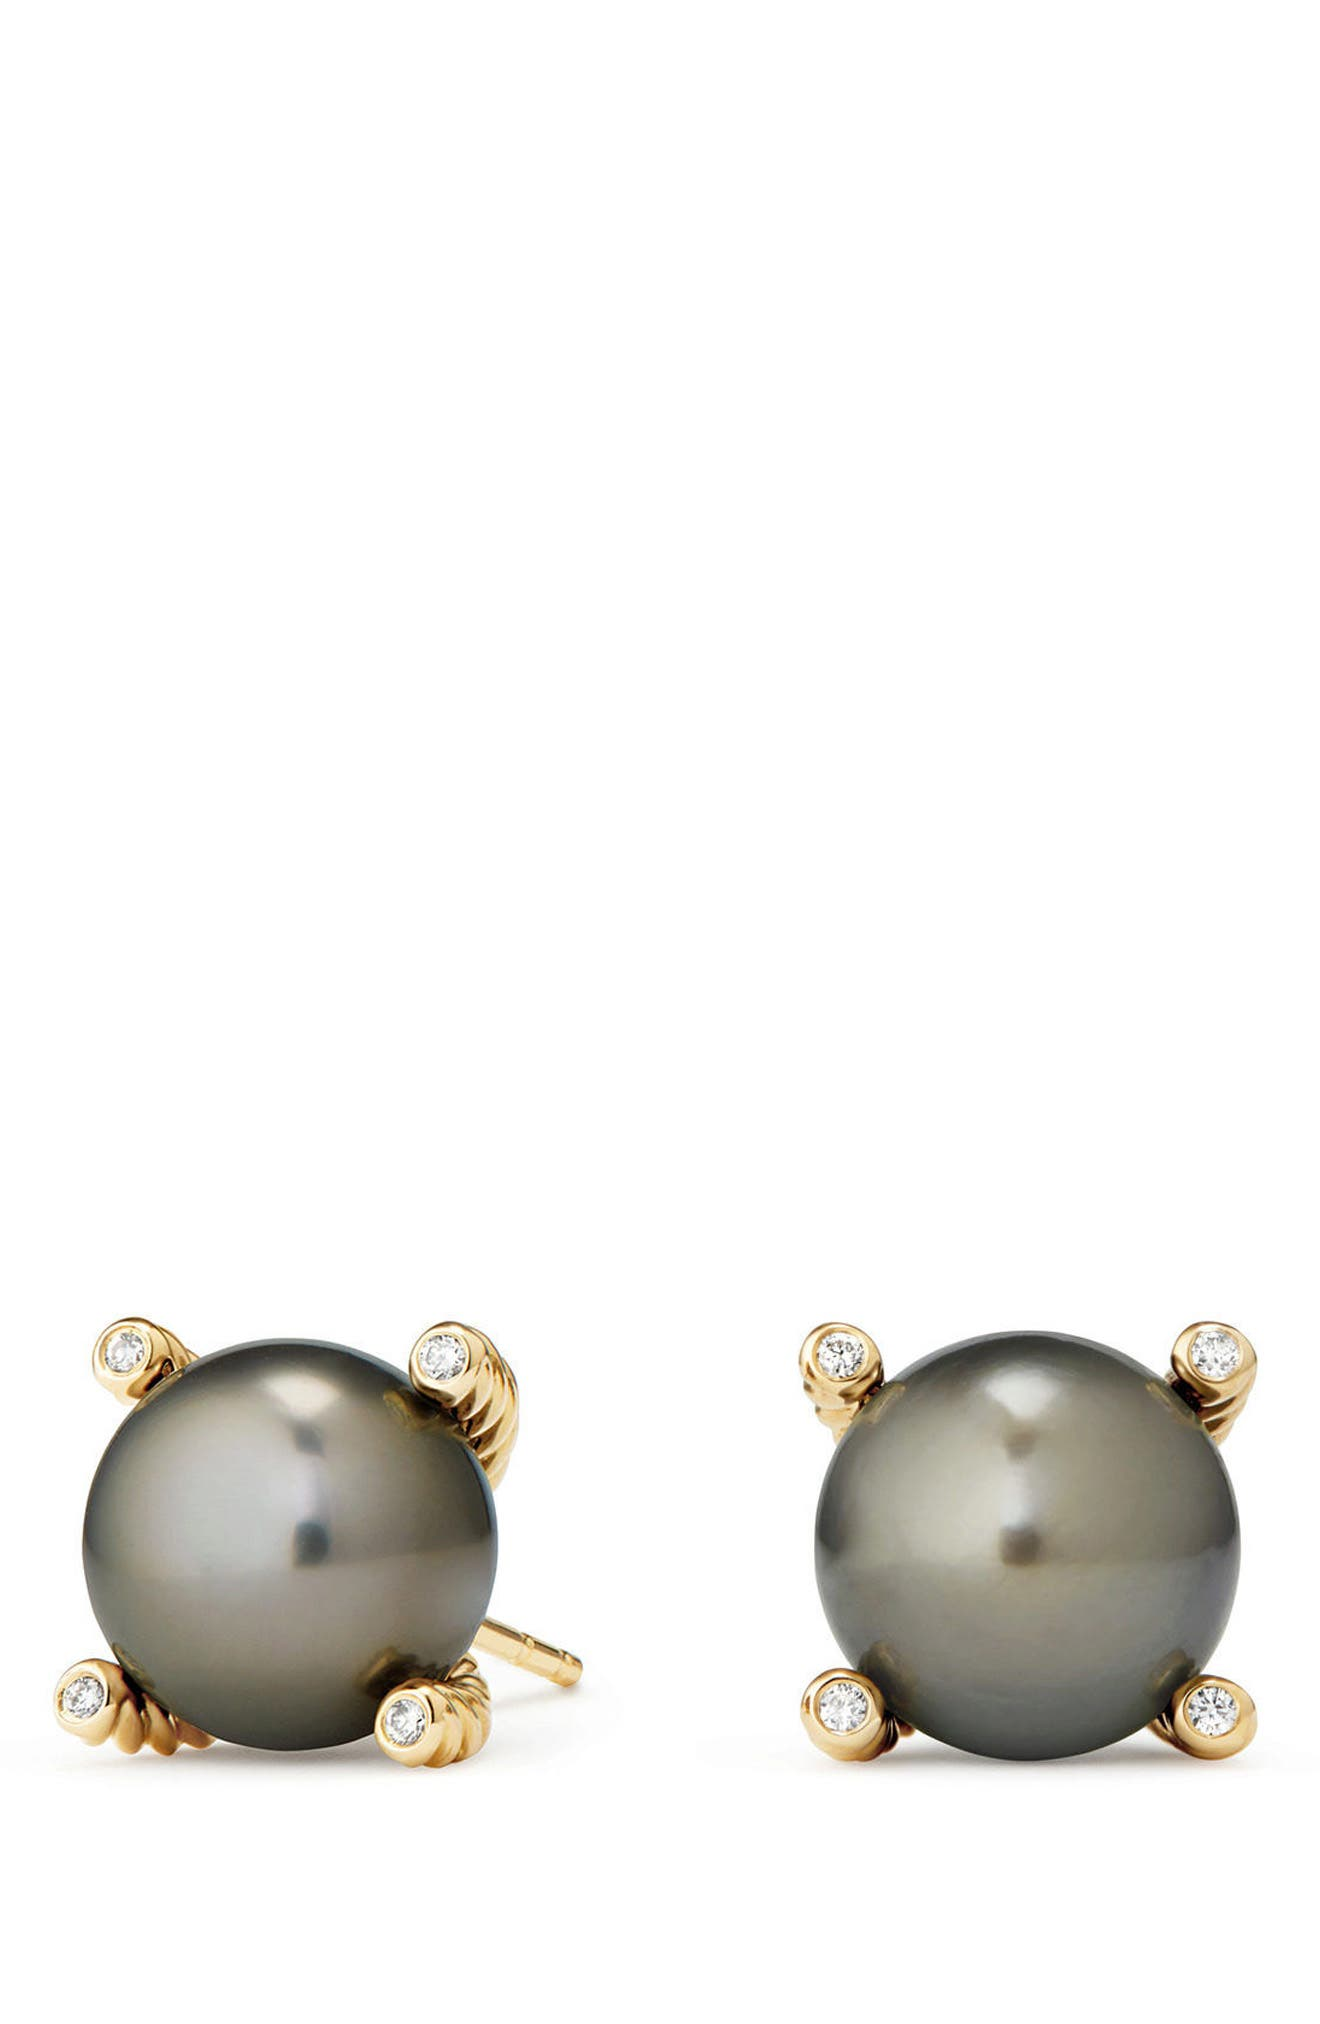 Genuine Pearl Earrings with Diamonds in 18K Gold,                             Main thumbnail 1, color,                             GOLD/ TAHITIAN GREY PEARL